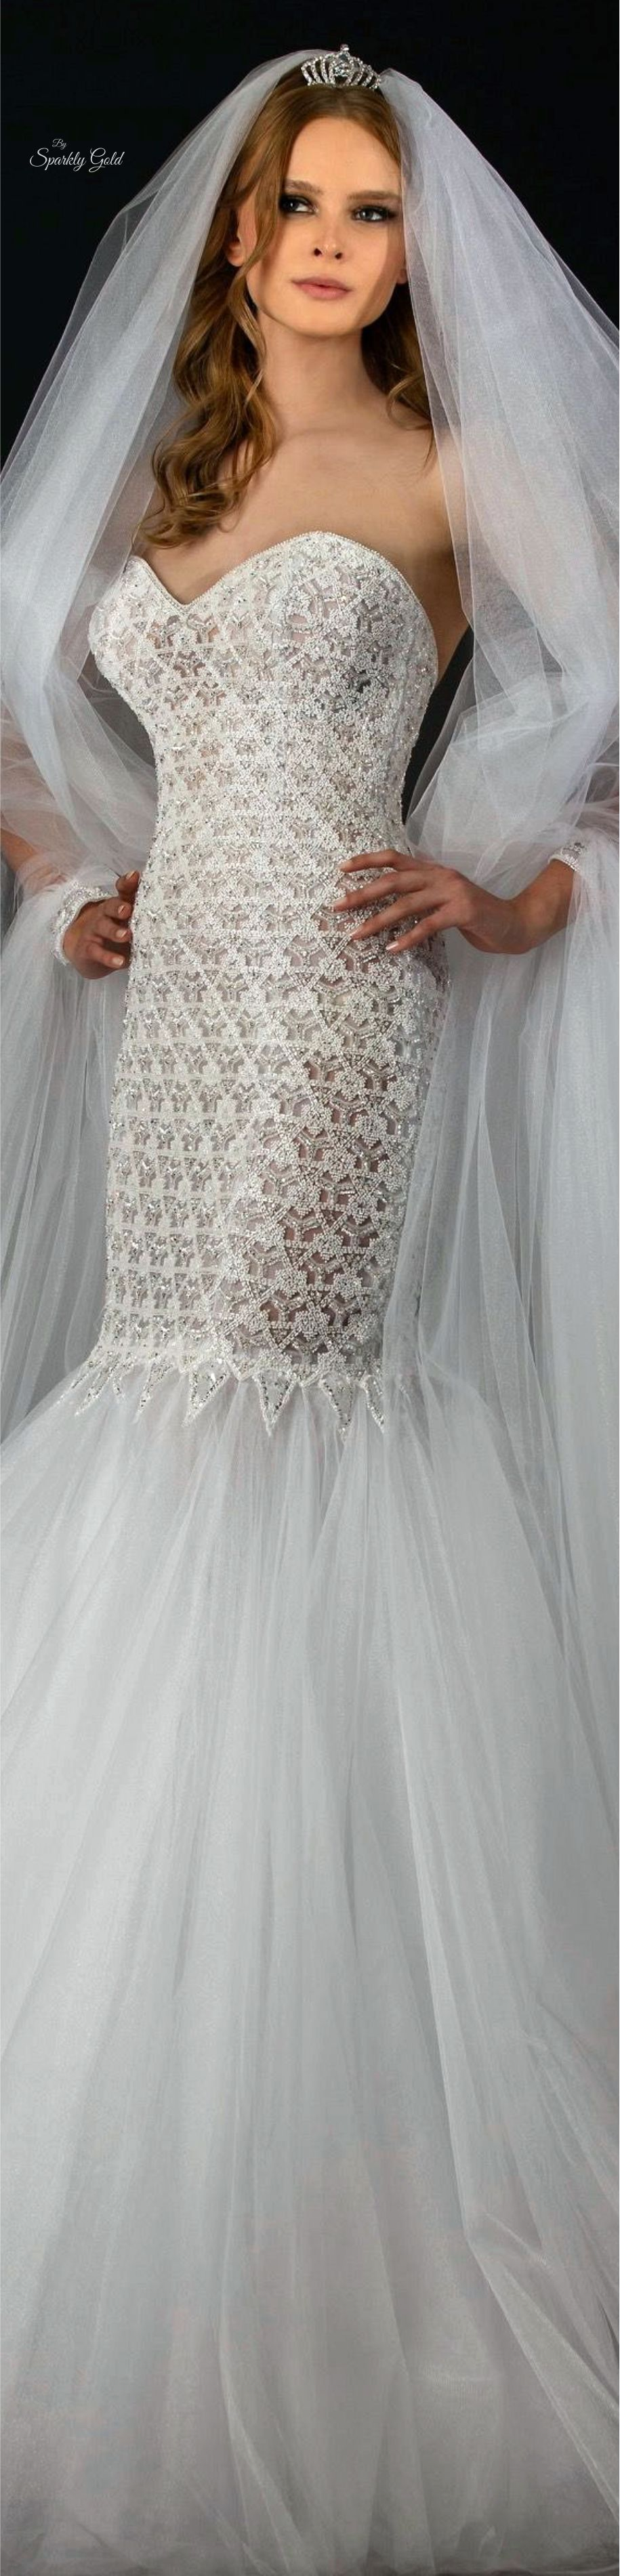 Appolo fashion spring bridal bridalboutique